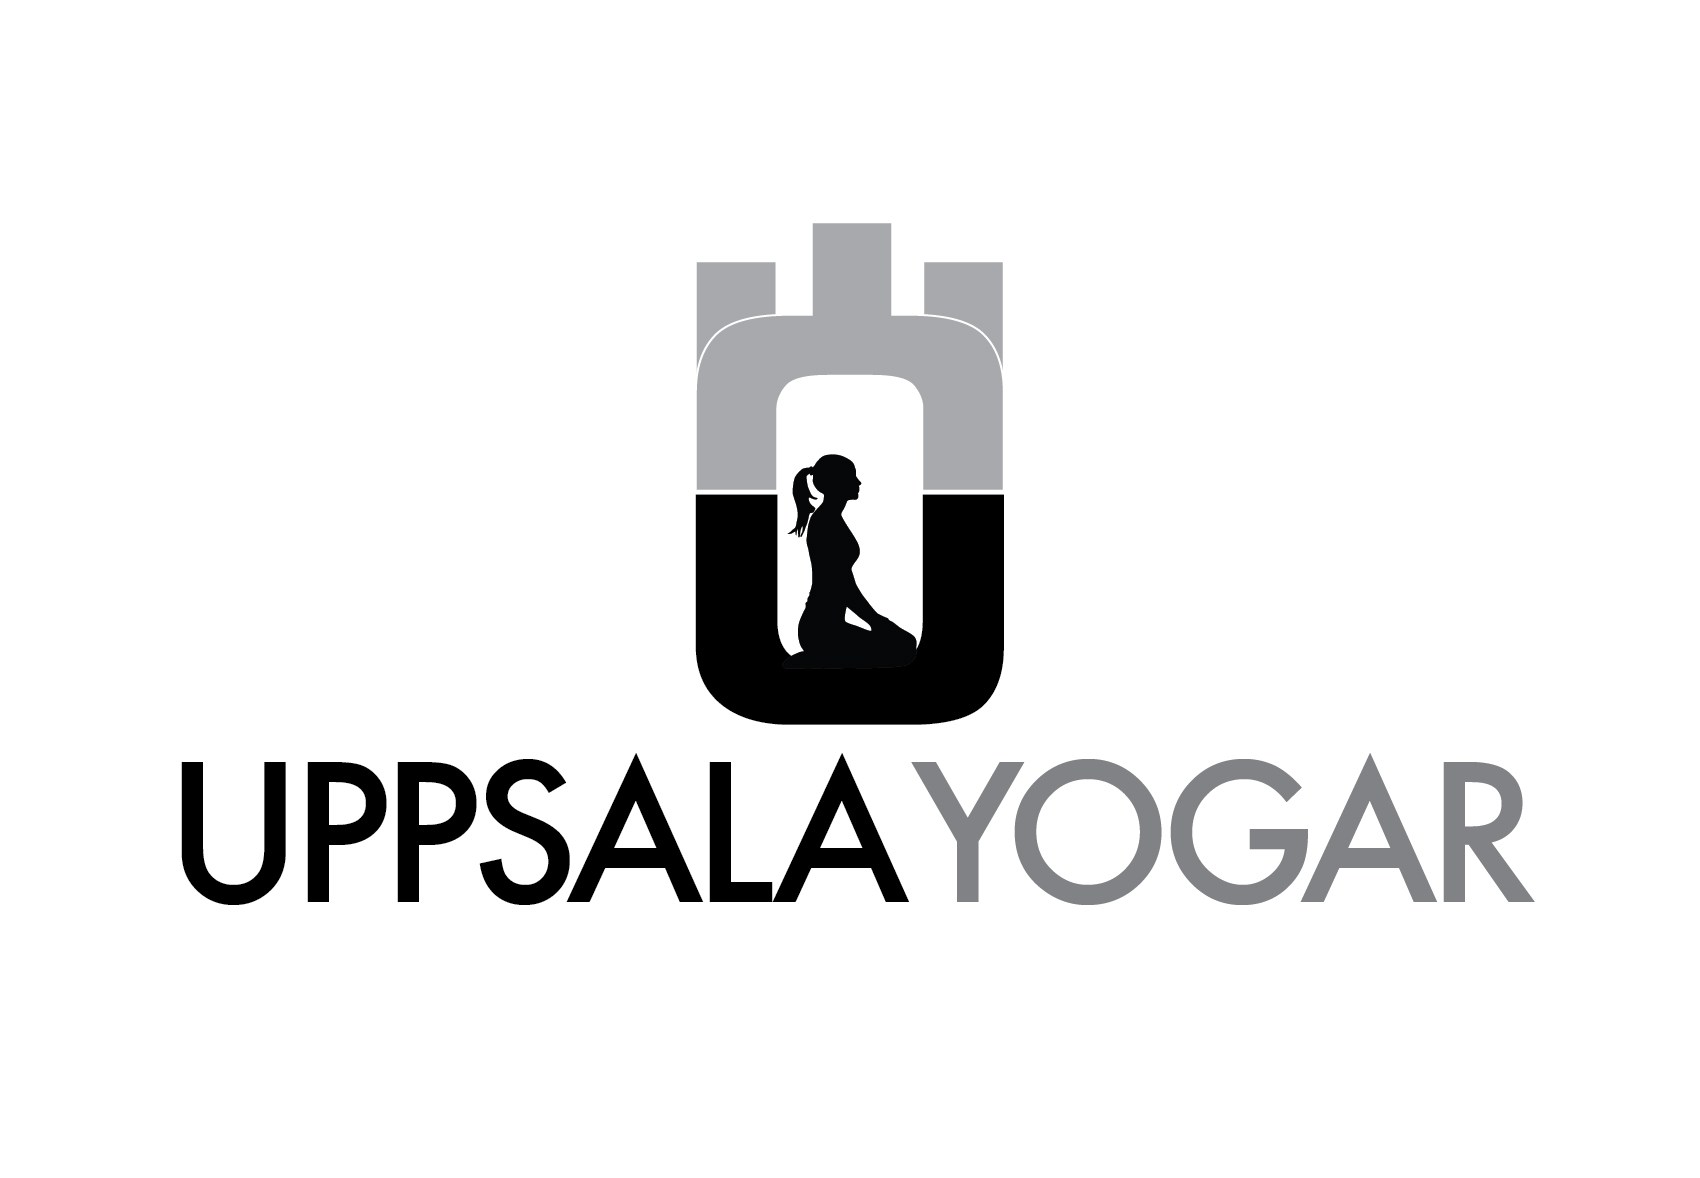 Logo Design by Waseem Haider - Entry No. 22 in the Logo Design Contest Unique Logo Design Wanted for Uppsala Yogar.